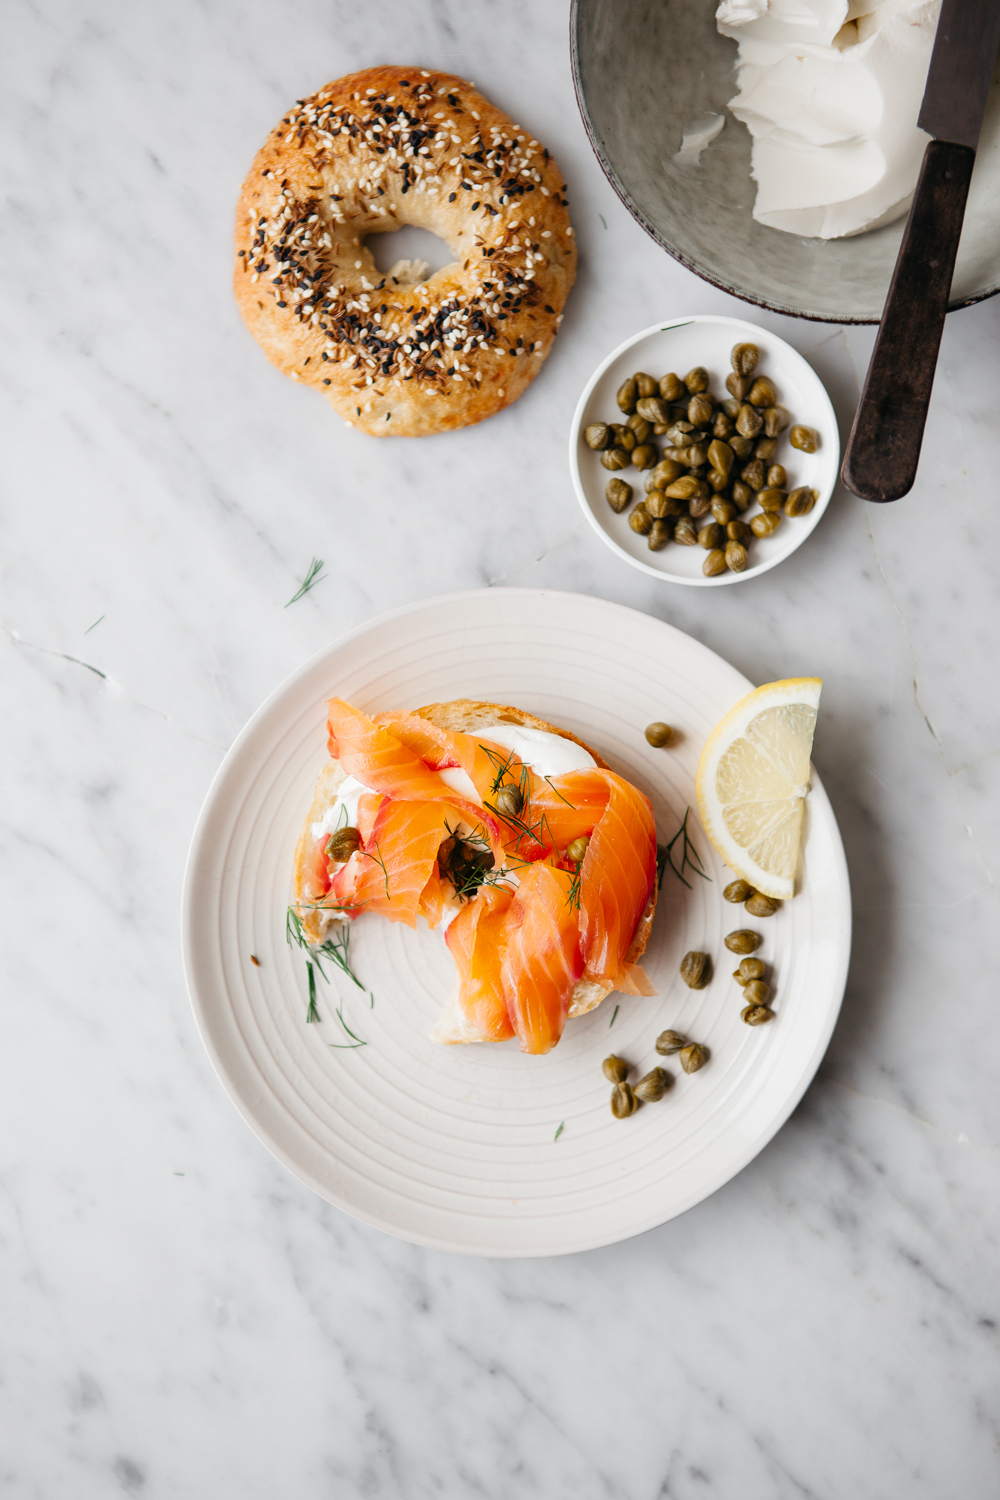 Brunch Recipes for Mother's Day - Sprouted Flour Bagel + Beet & Honey Cured Salmon | Renée Kemps